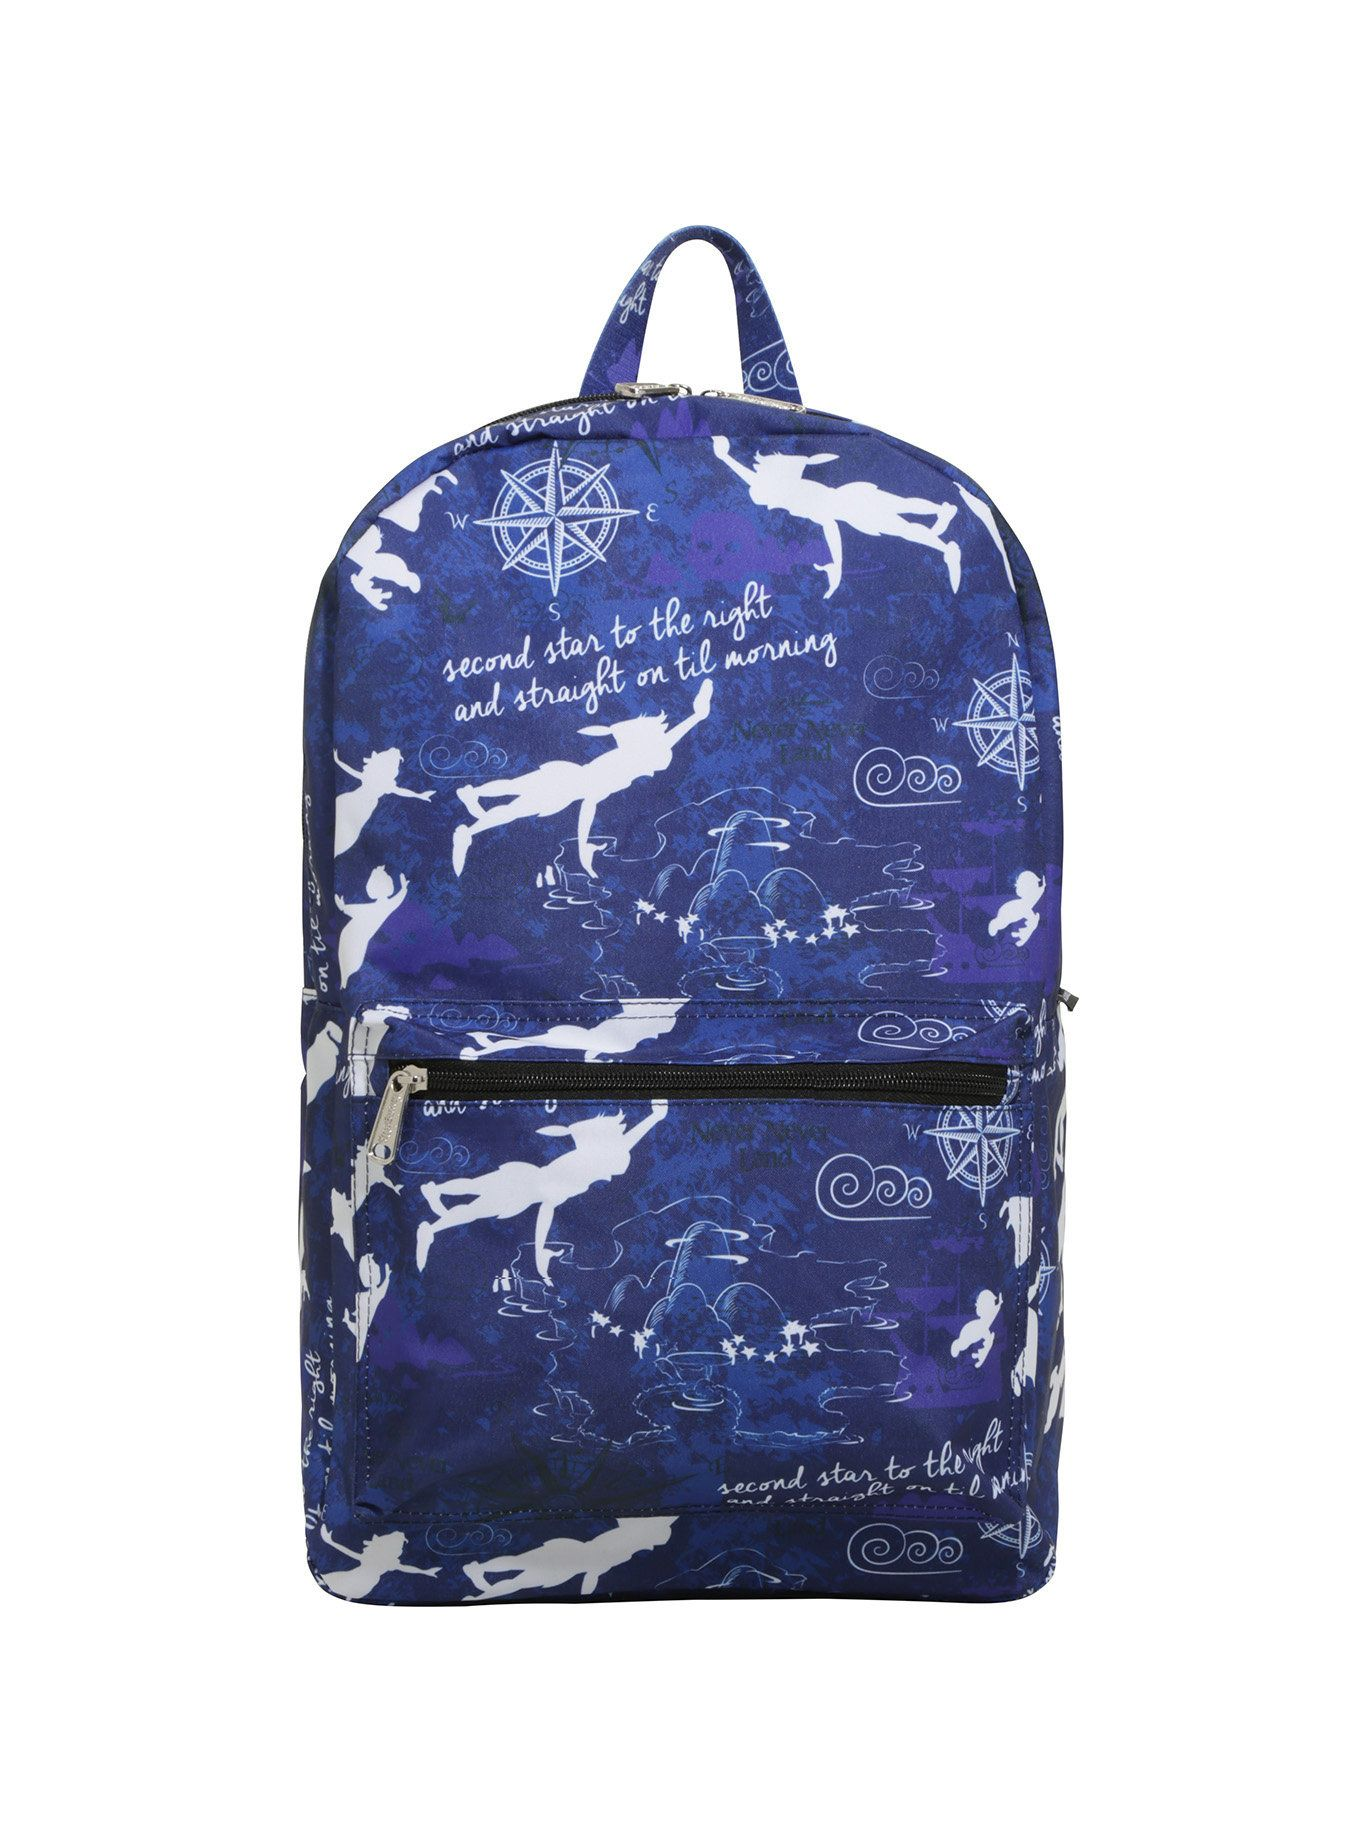 4b35bf3a132 Disney Peter Pan Character Silhouette Backpack